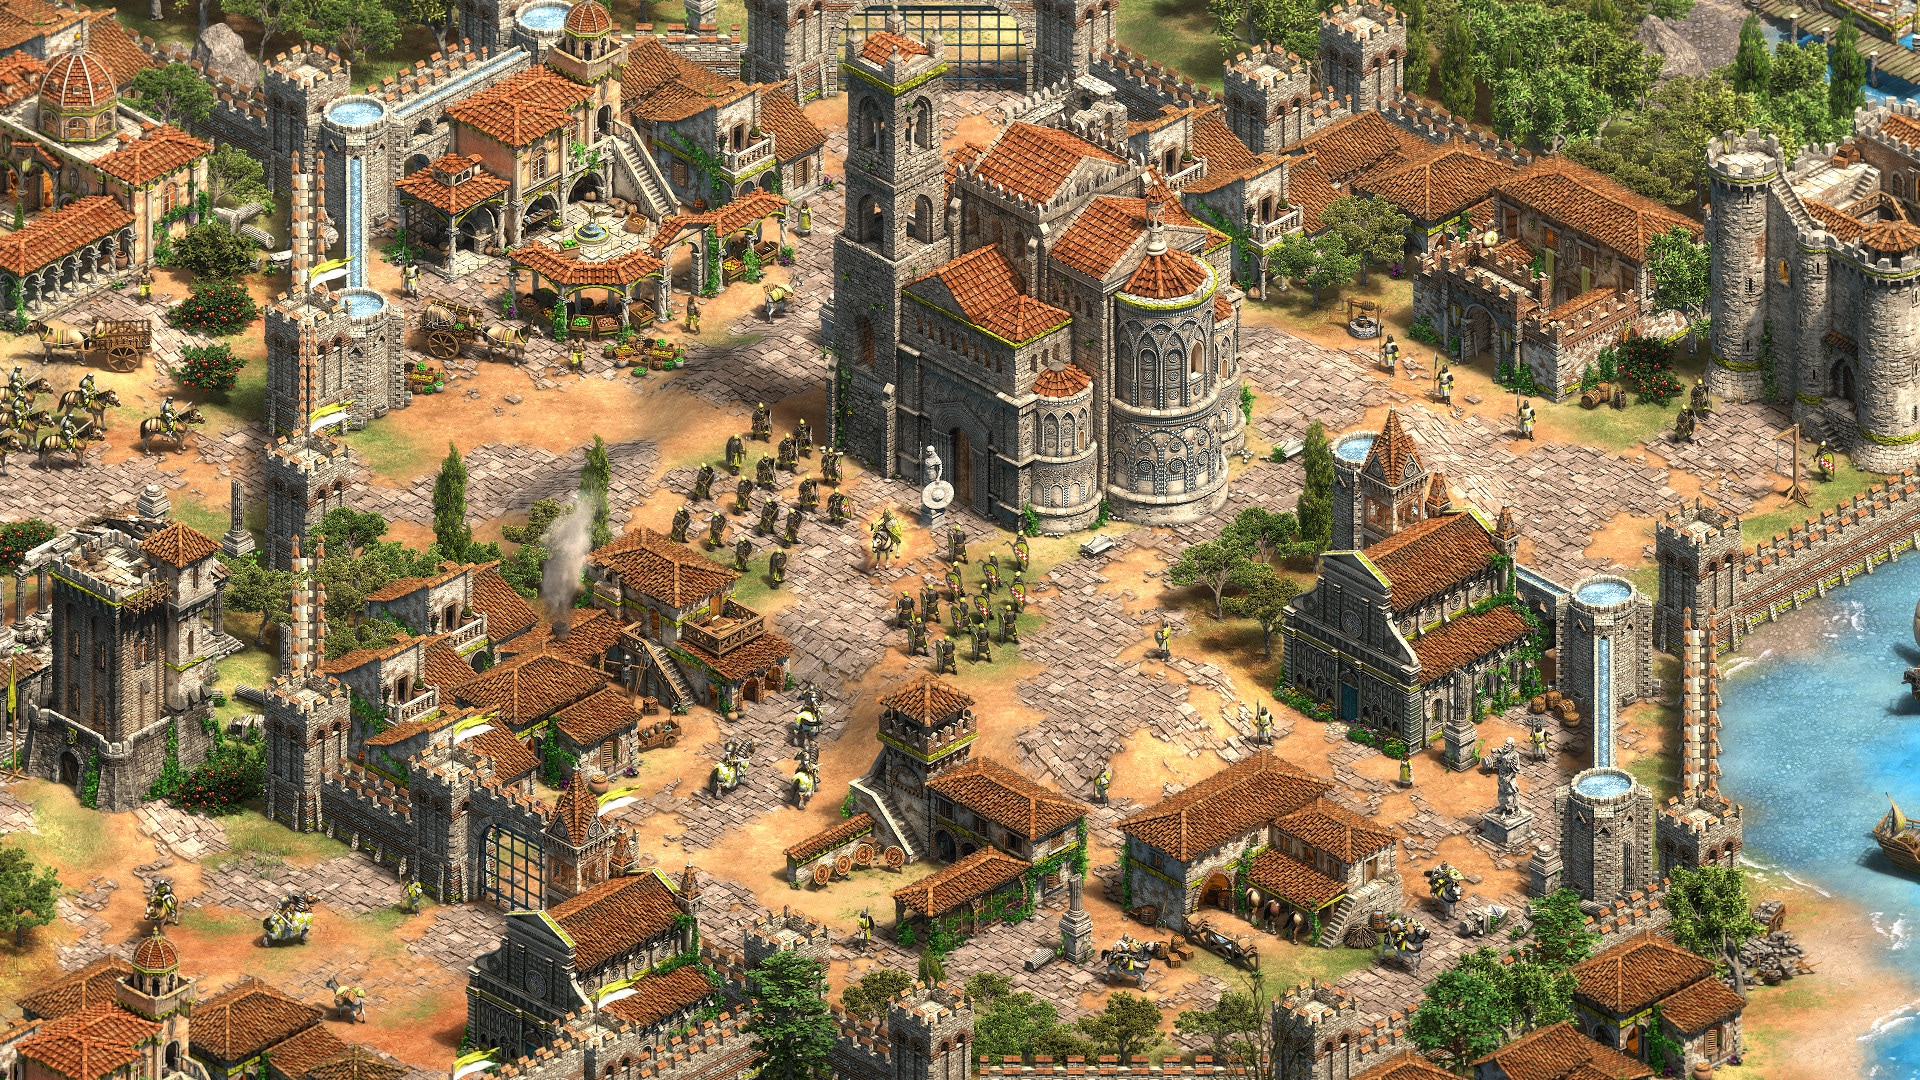 Age of Empires II: Definitive Edition - Lords of the West (PC) - Steam Key - GLOBAL - 3